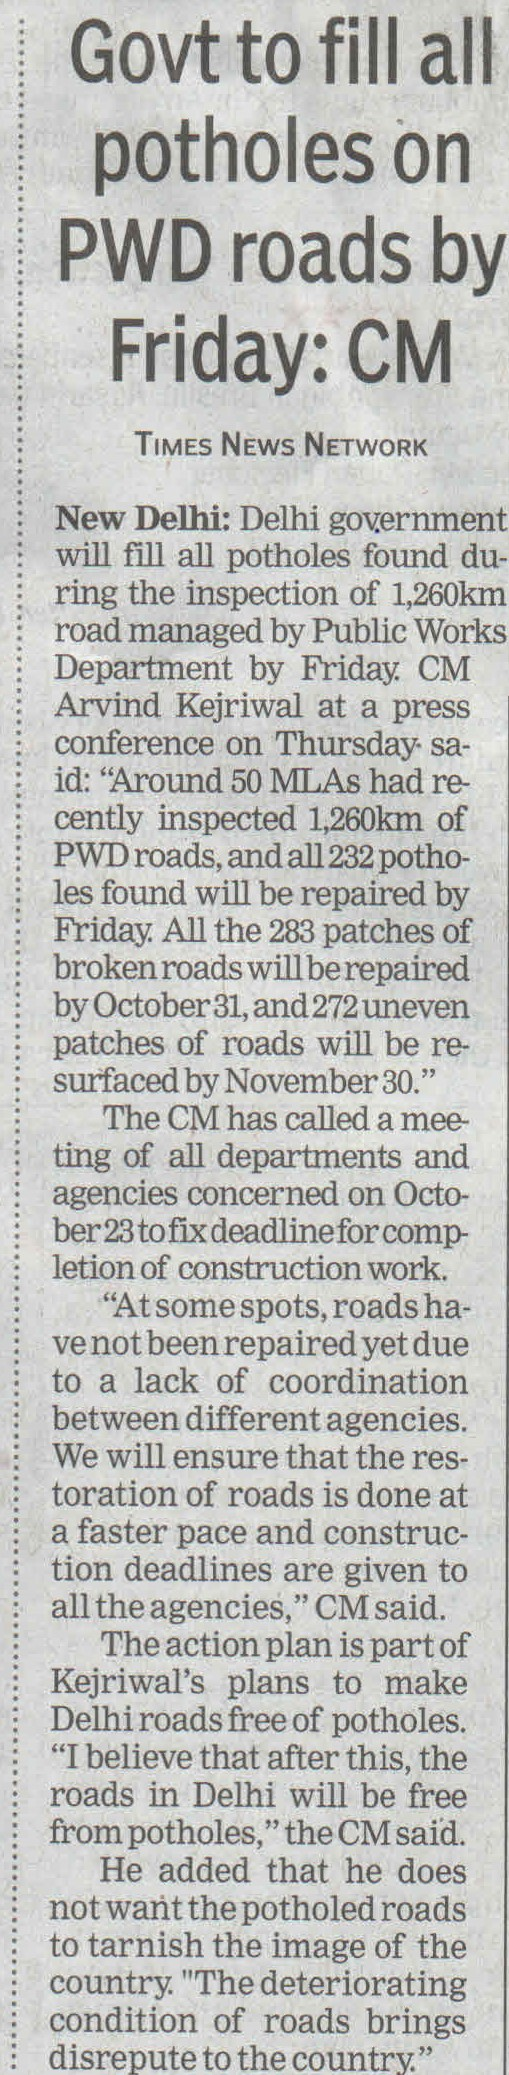 Govt. to fill all potholes on PWD roads by Friday